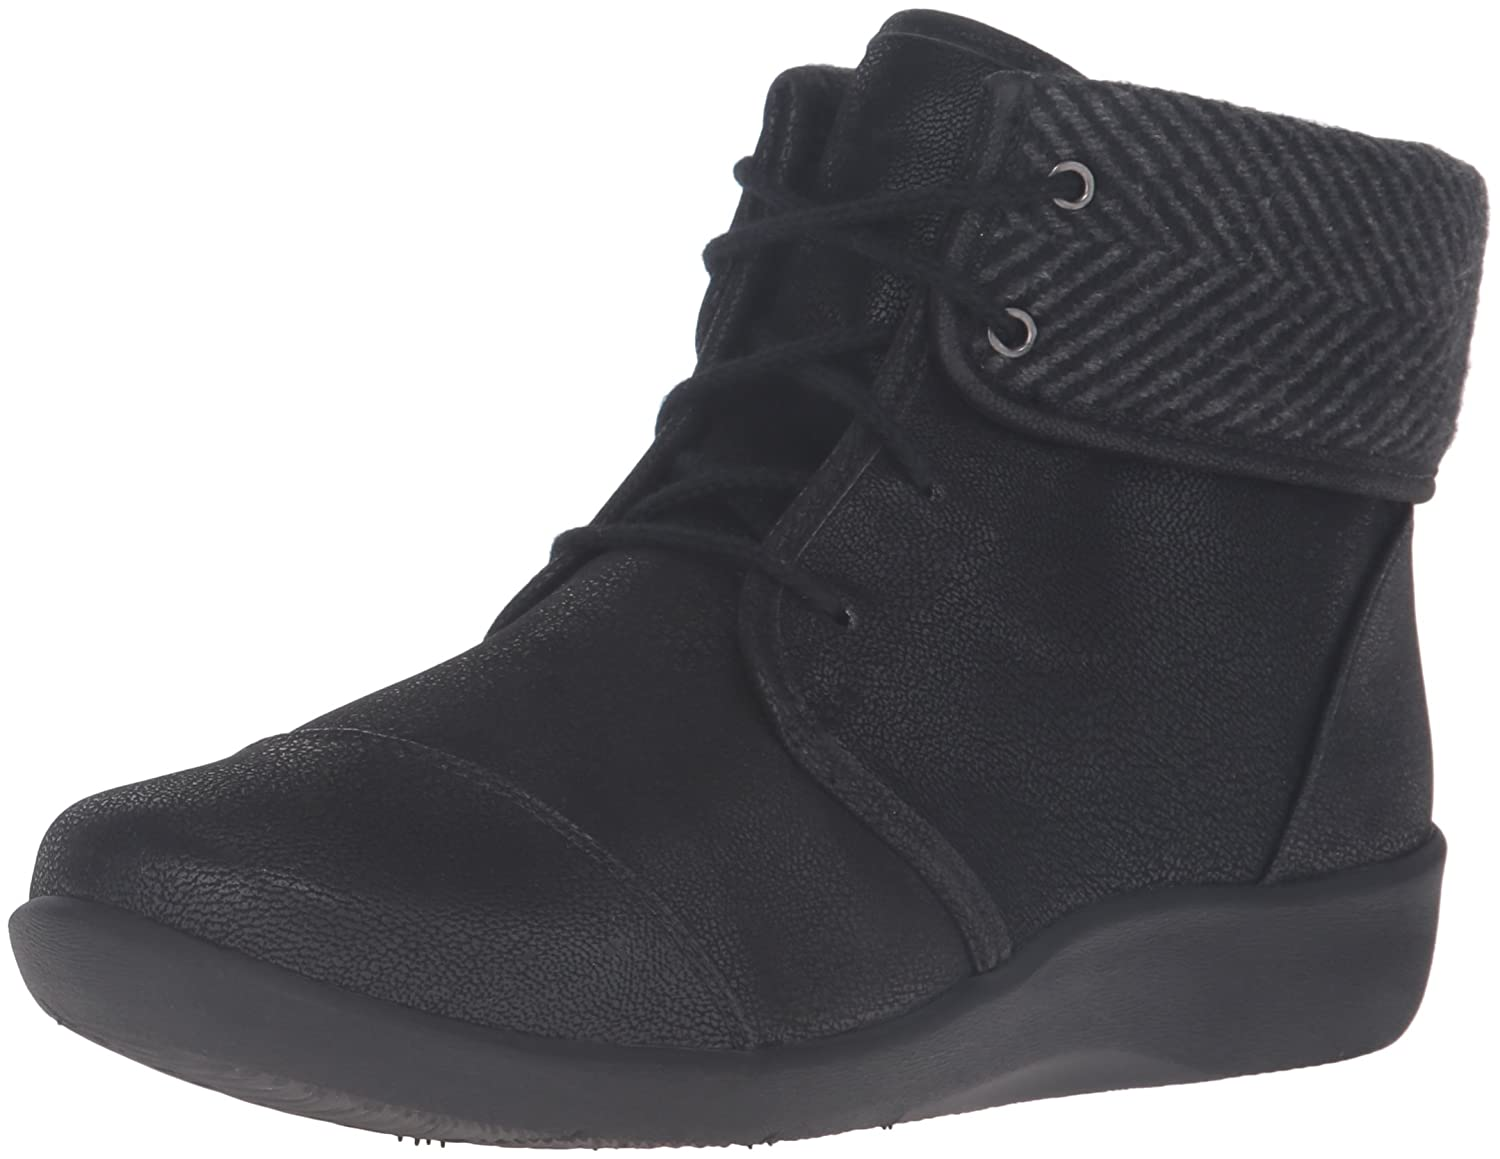 CLARKS Women's Sillian Frey Boot B01BLUI9UK 9 A - Narrow|Black Synthetic Nubuck